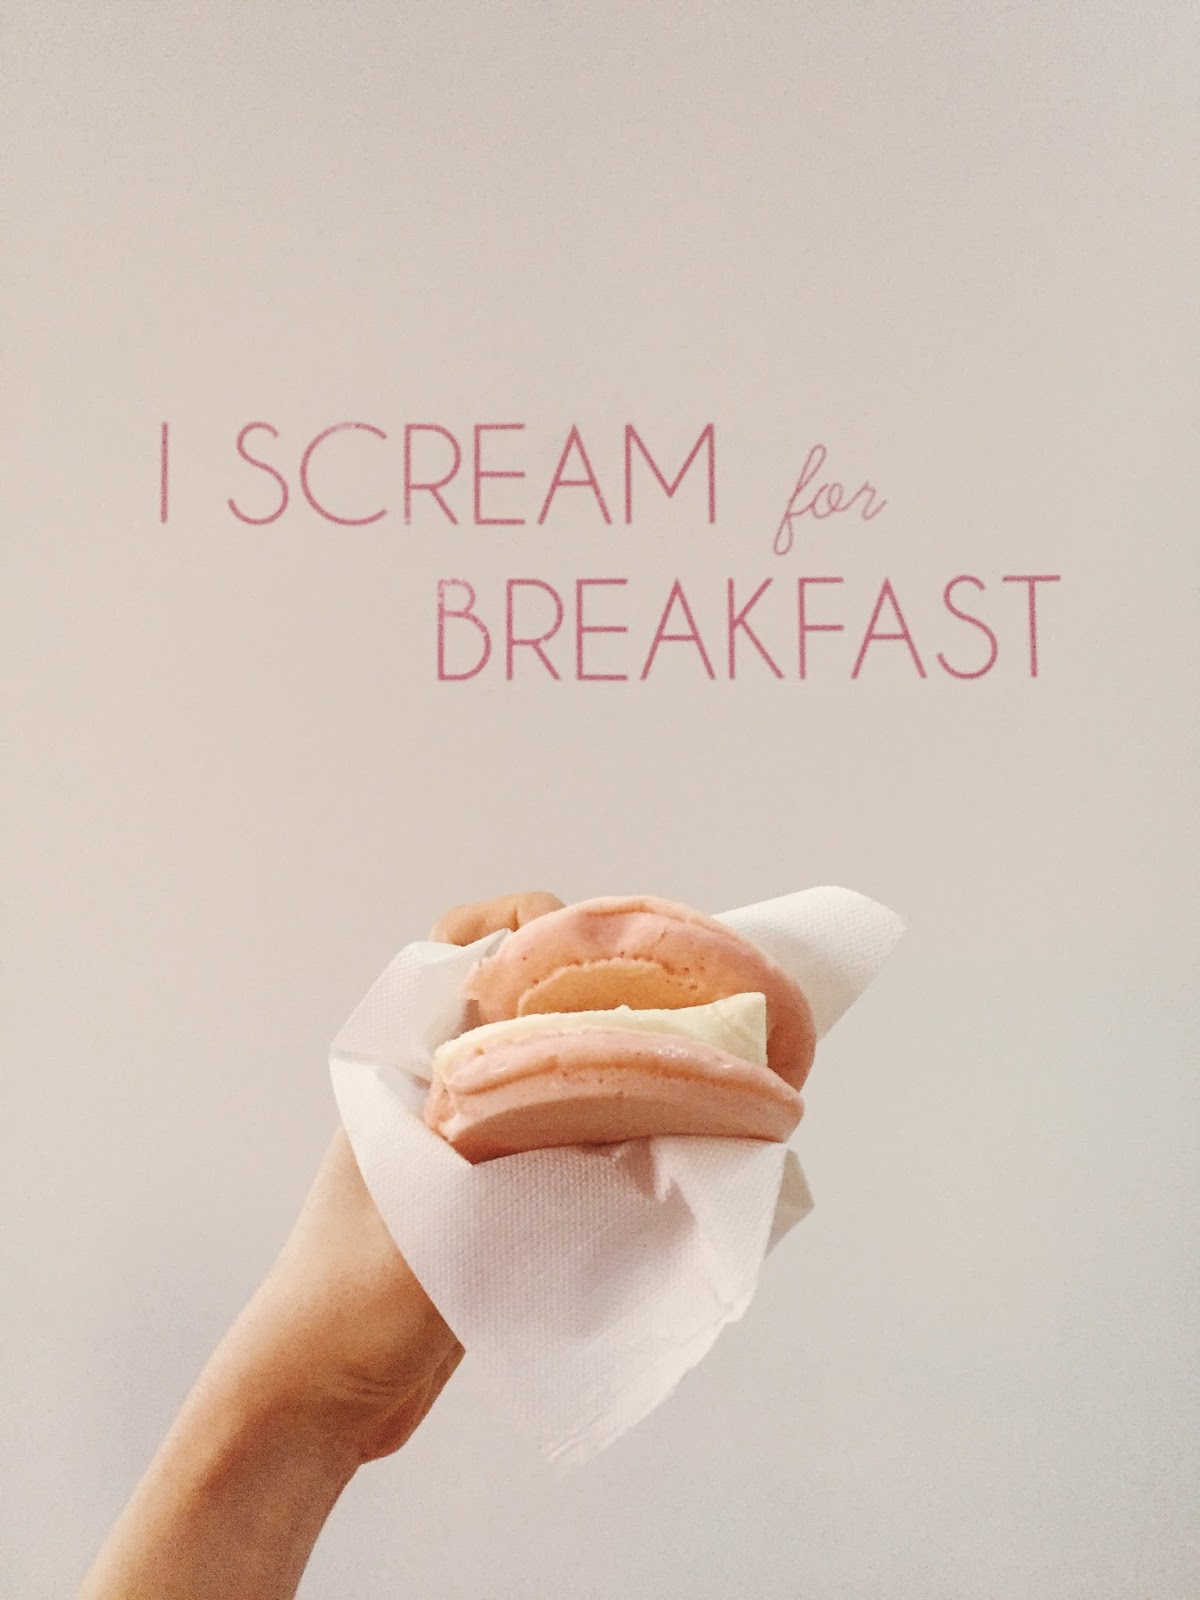 I Scream for Breakfast_Museum of Ice Cream_Adrienne Nguyen_Invictus_Pharmacy Blog_Travel Blogger_Pancake Ice Cream Sandwich_Food Blogger